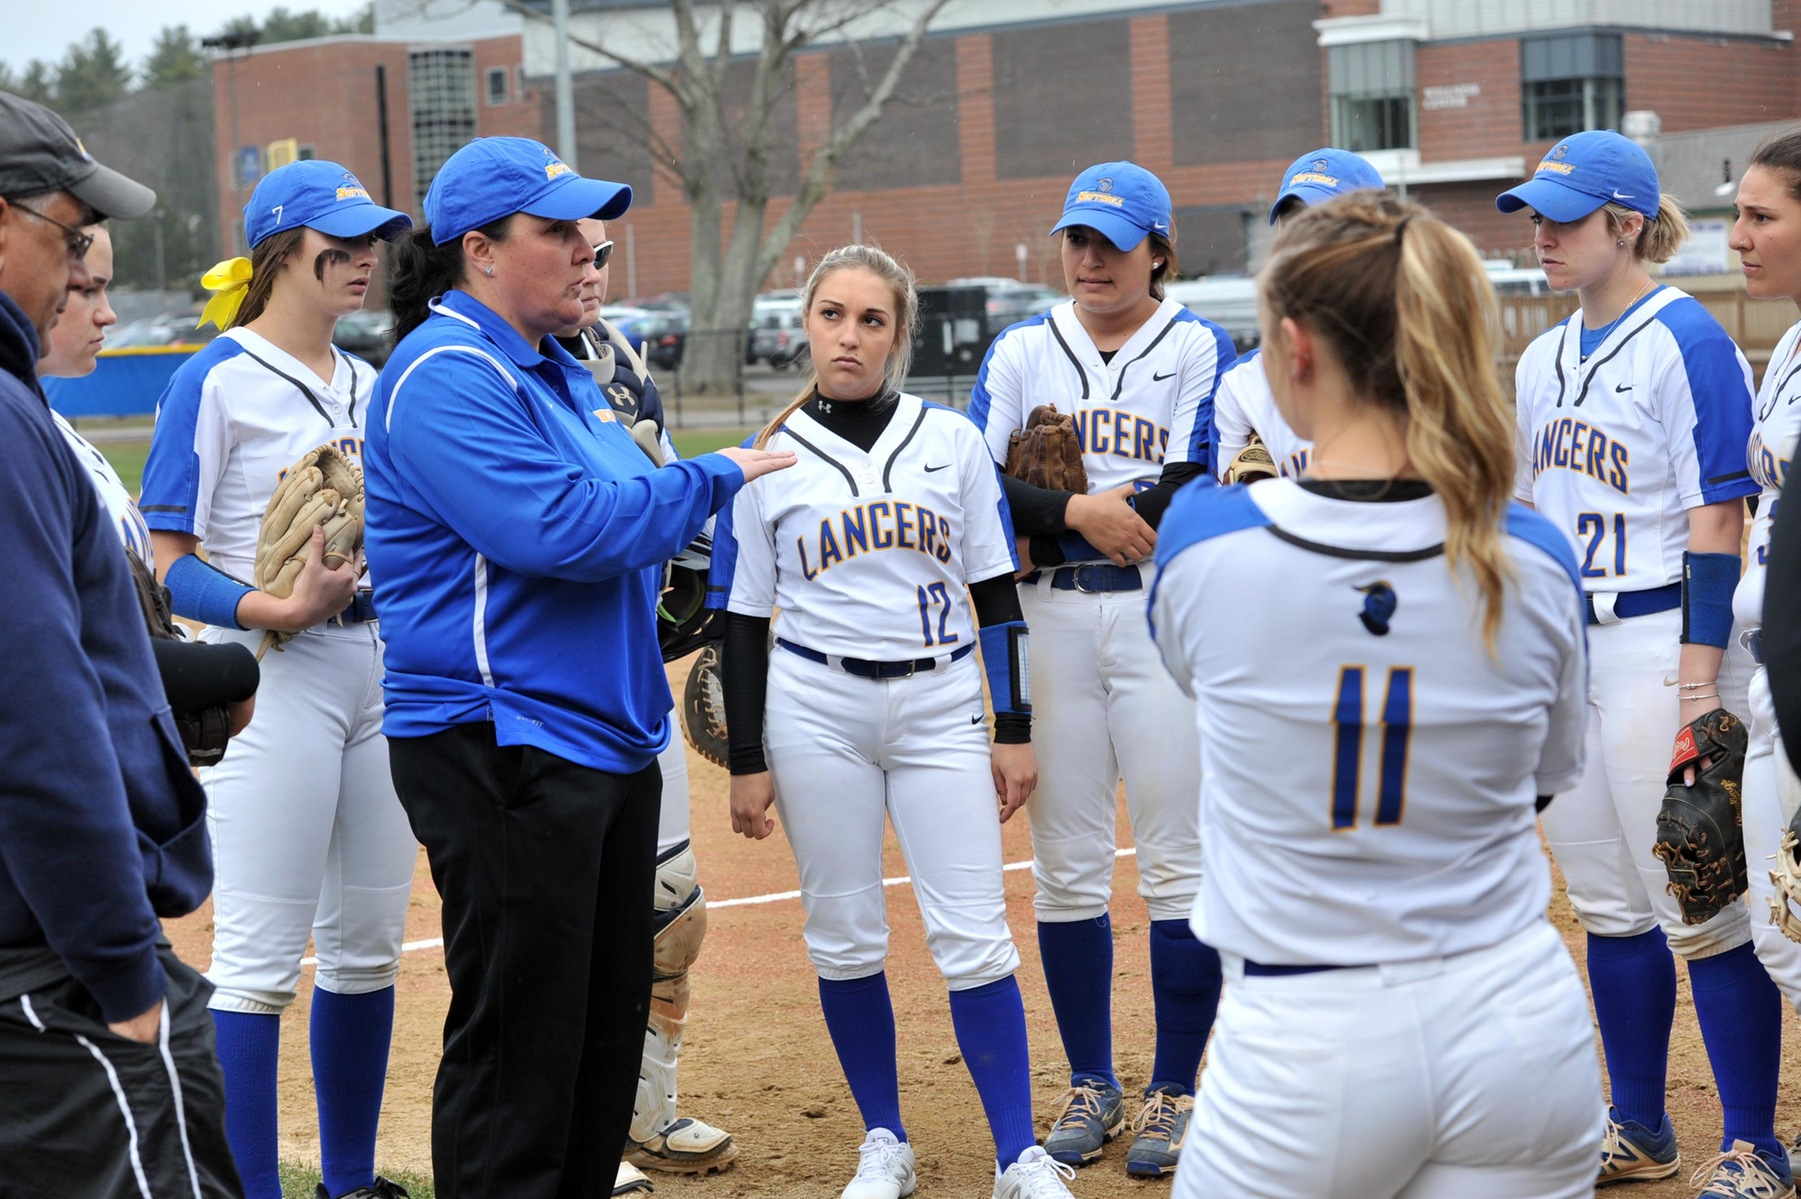 Cote Picks Up 100th Win as Lancers Sweep Buccs; Softball Earns MASCAC Regular Season Title